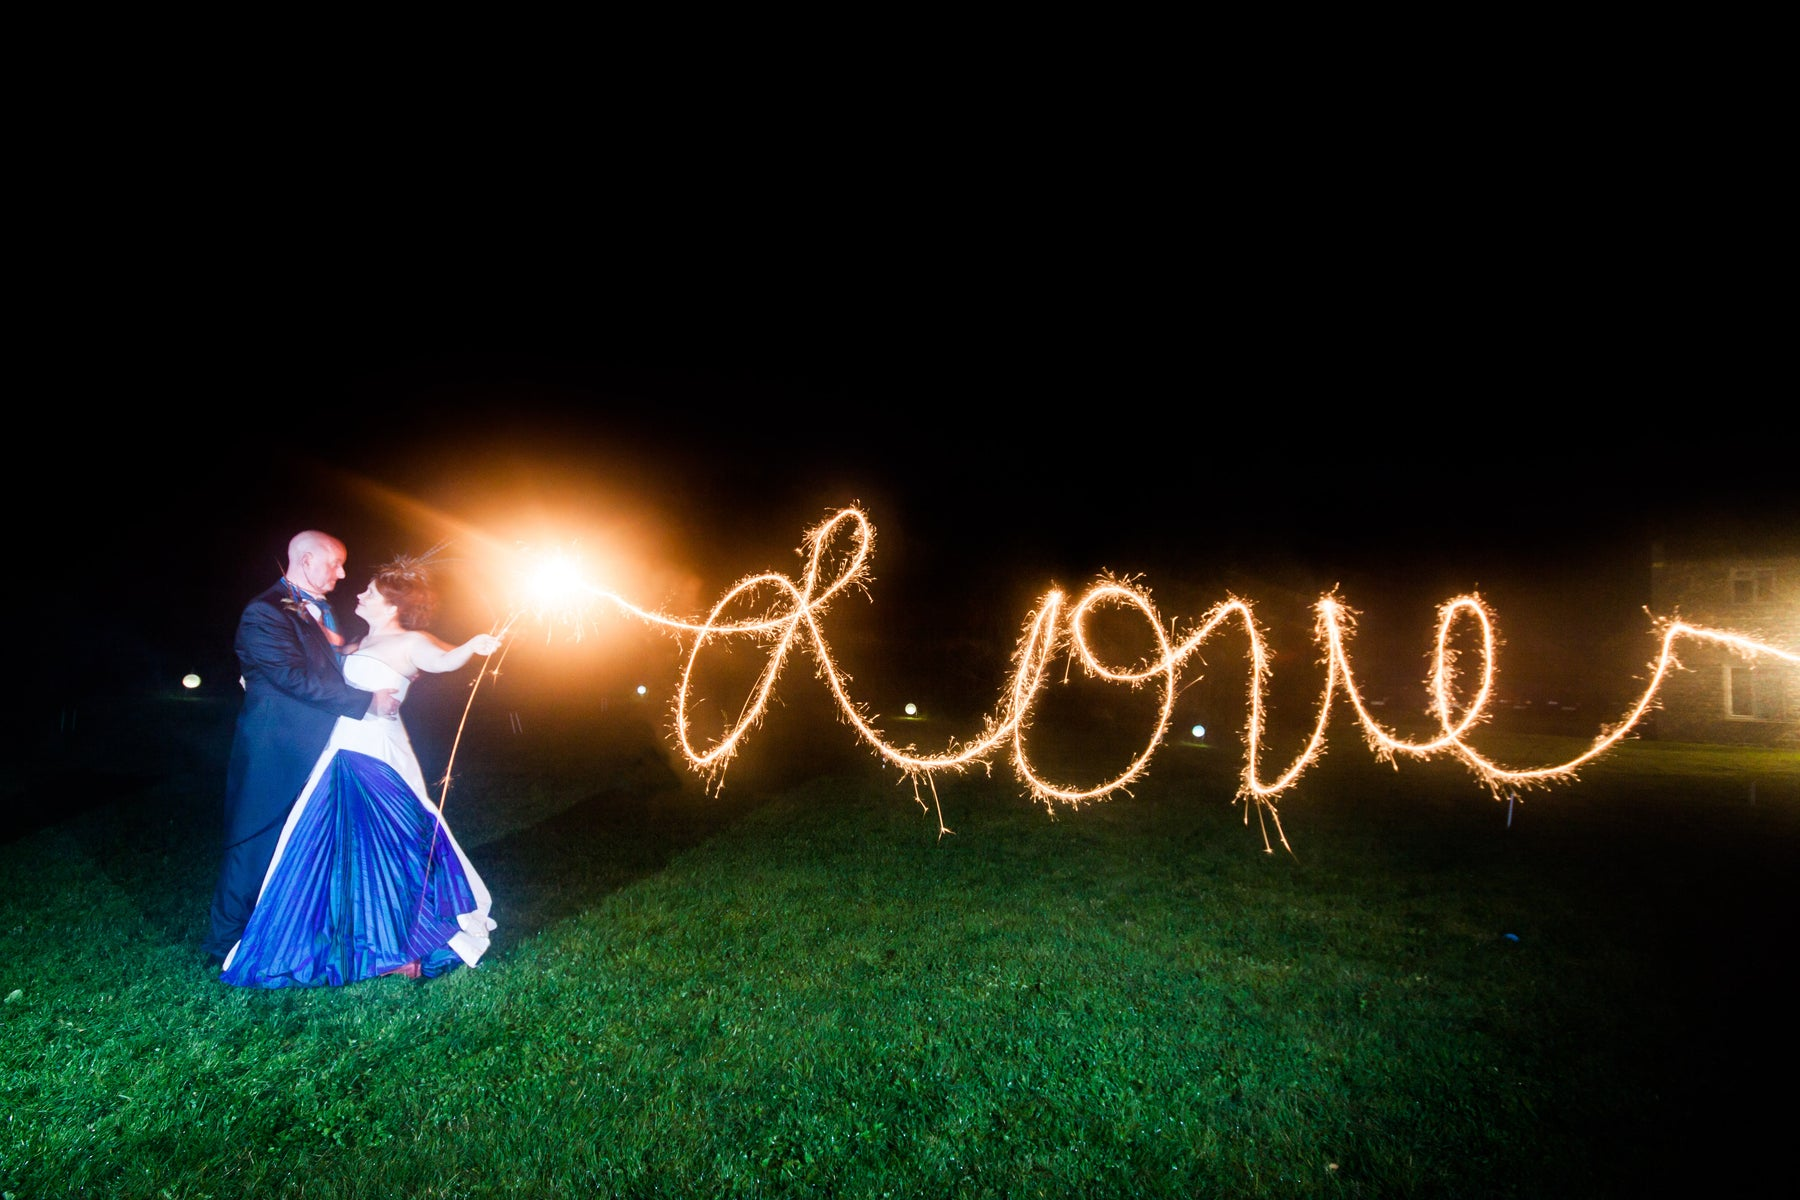 Wedding Fireworks - Add colour to your special day